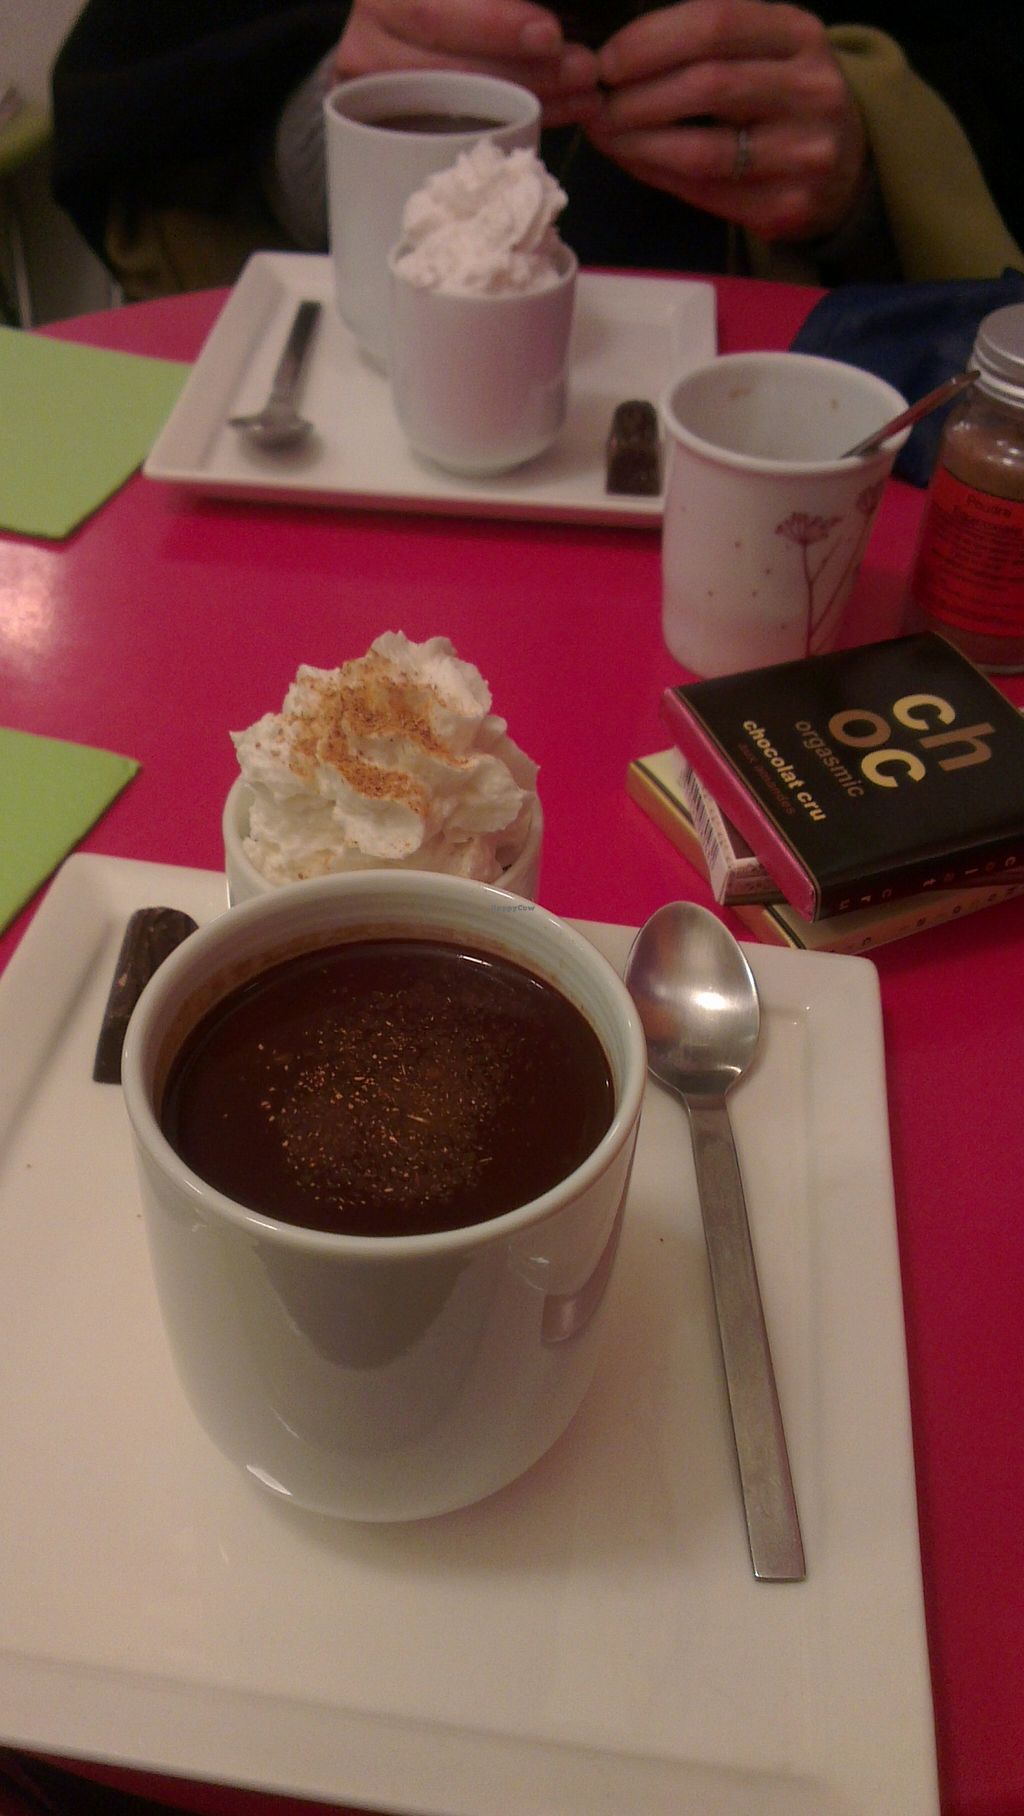 """Photo of ChocoLATITUDES  by <a href=""""/members/profile/ZannaStar"""">ZannaStar</a> <br/>vegan hot chocolate with vegan whipped cream for two at the back of the shop, plus some yummy purchases <br/> August 30, 2015  - <a href='/contact/abuse/image/35799/115809'>Report</a>"""